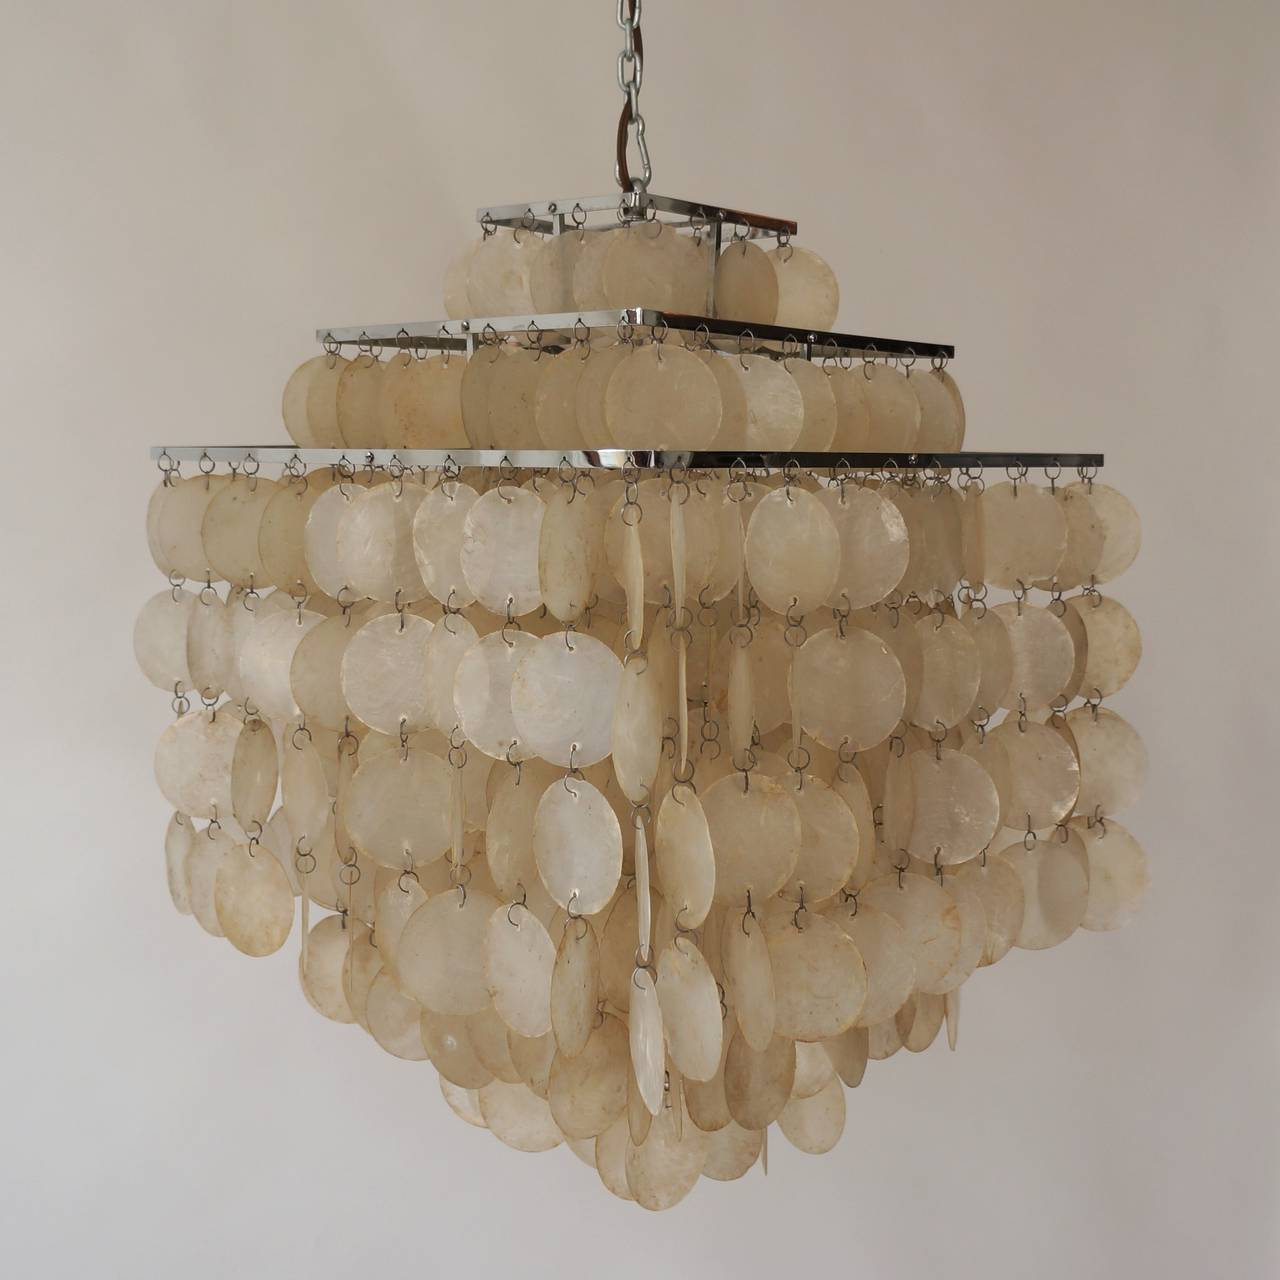 capiz shell chandelier by verner panton 3 - Capiz Shell Chandelier